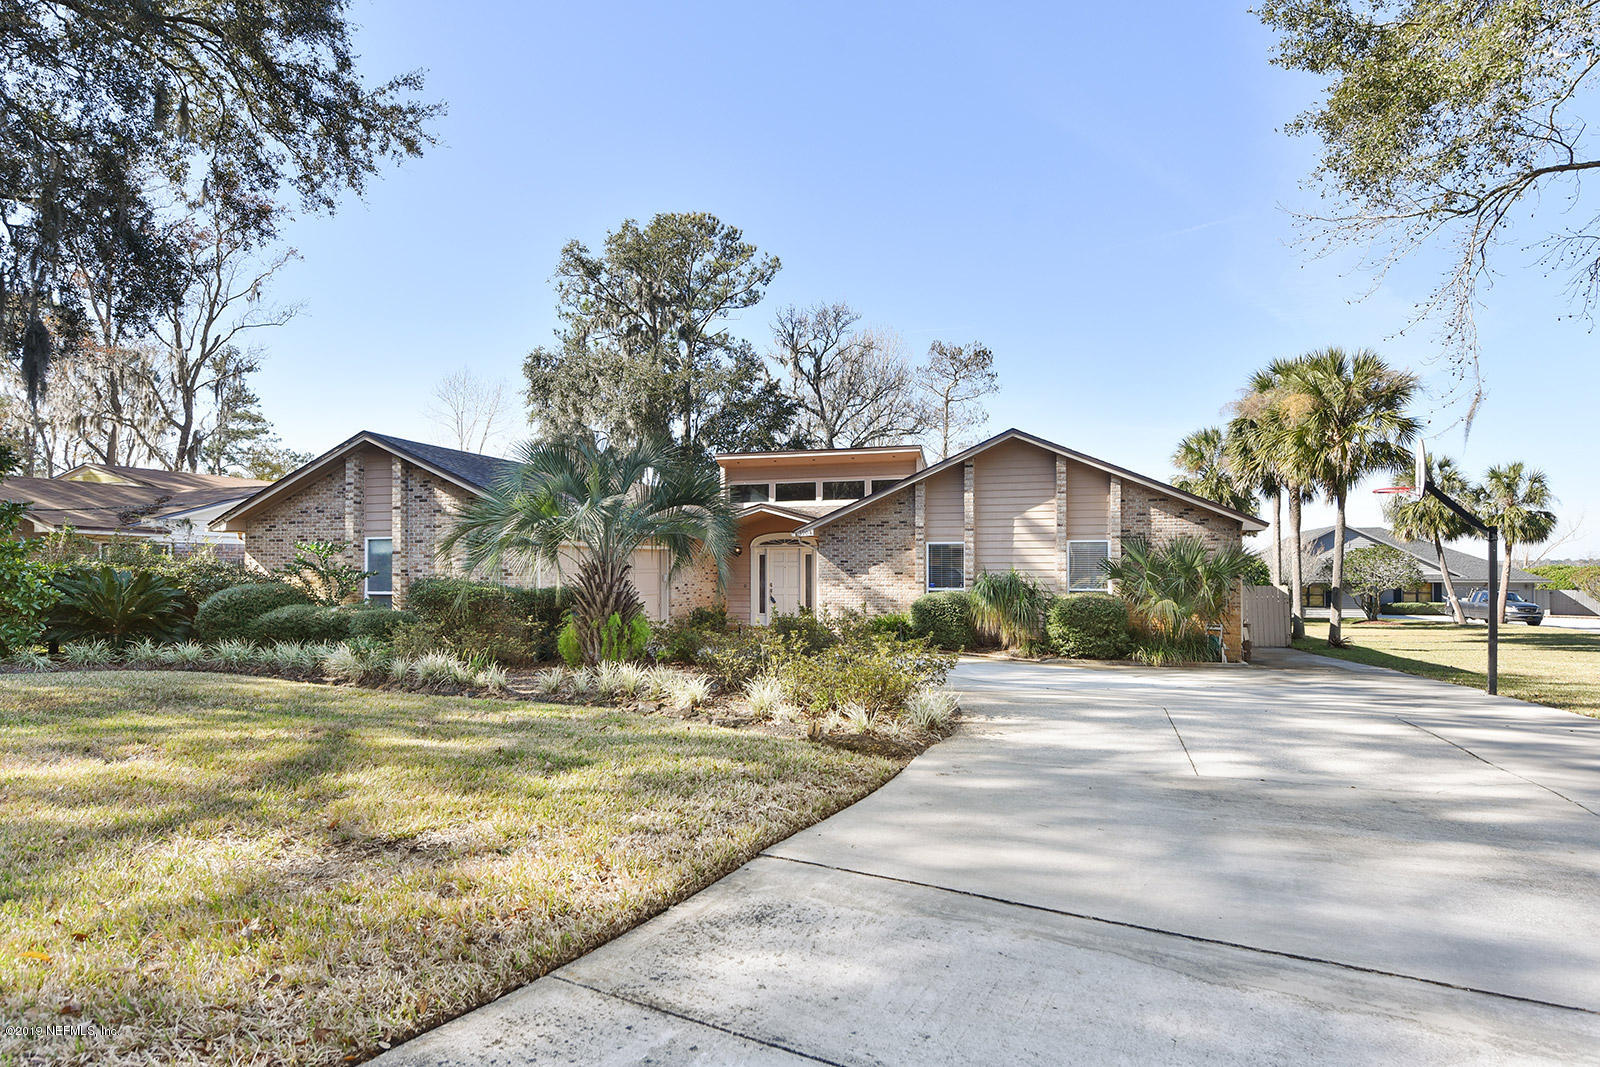 3904 WAYLAND, JACKSONVILLE, FLORIDA 32277, 4 Bedrooms Bedrooms, ,3 BathroomsBathrooms,Residential - single family,For sale,WAYLAND,985917